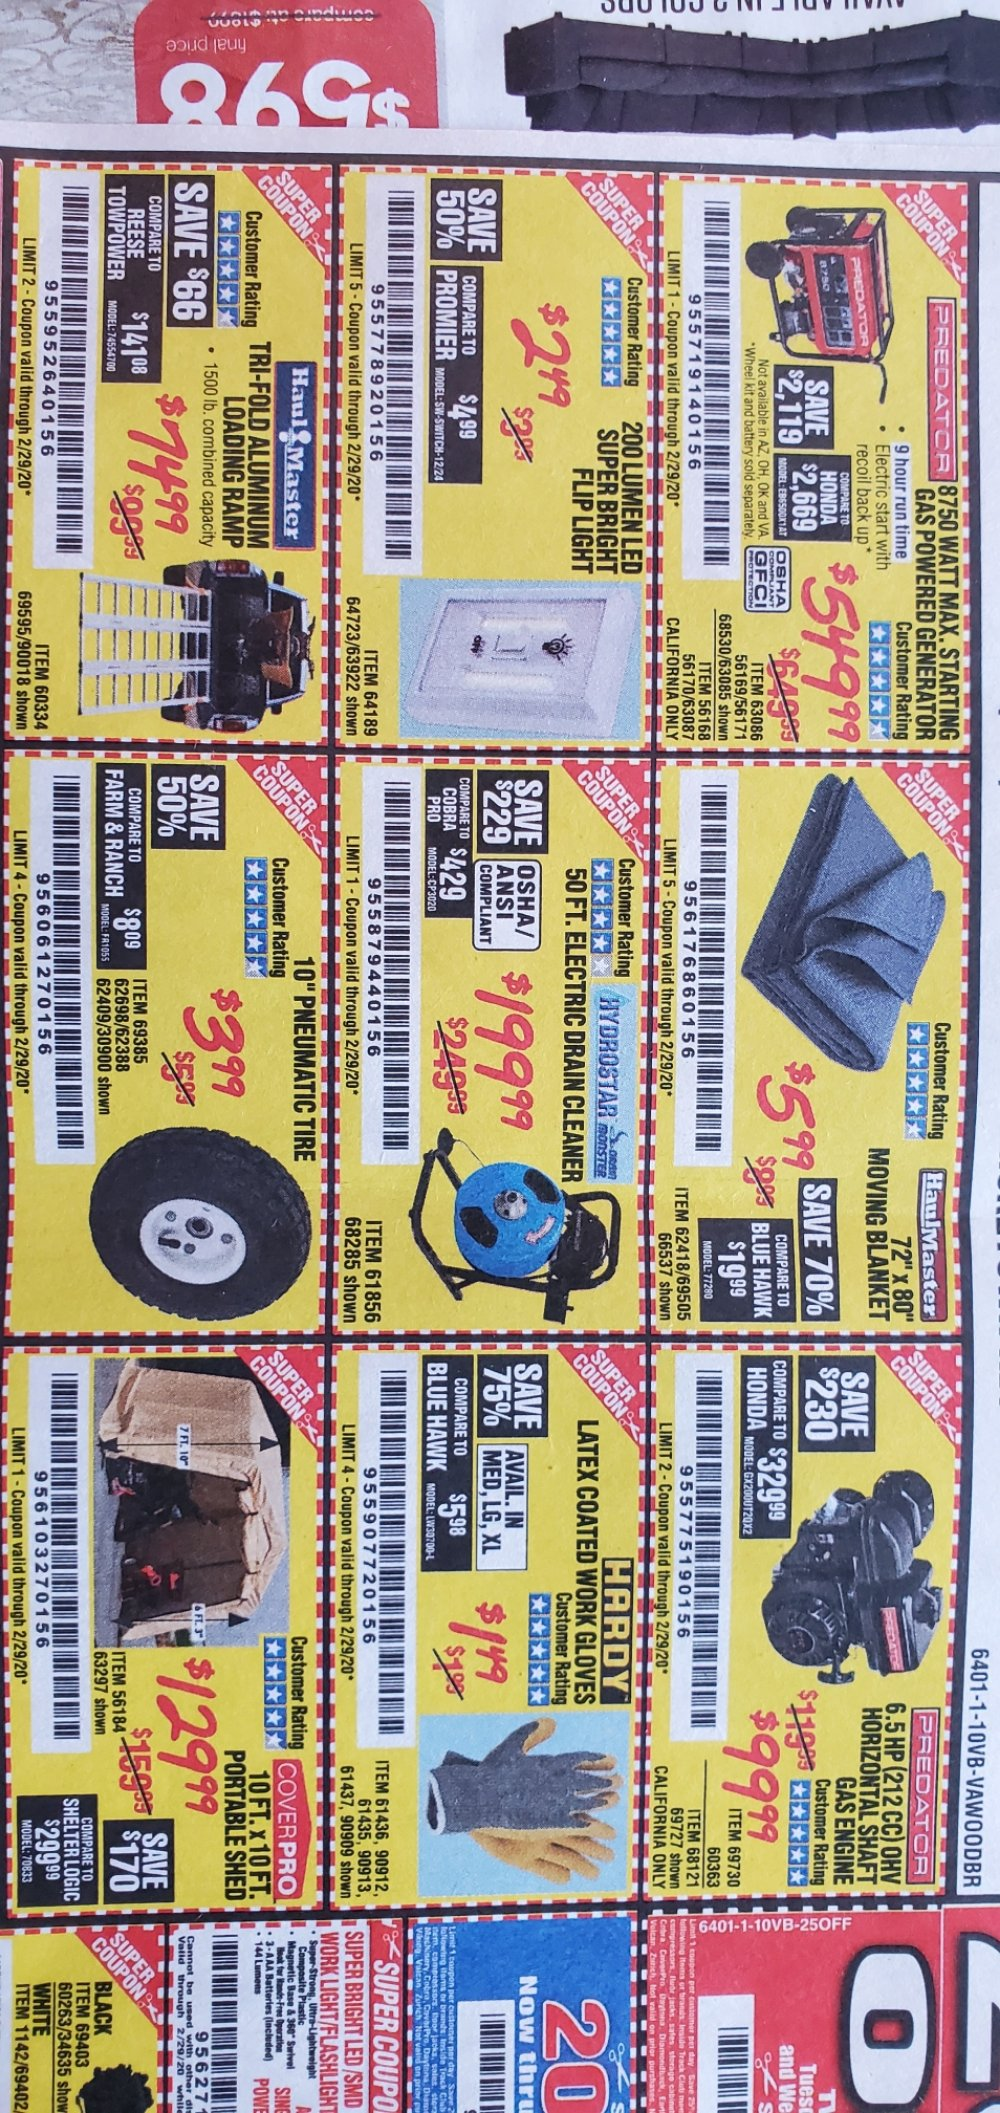 Harbor Freight Coupon, HF Coupons - after Christmas